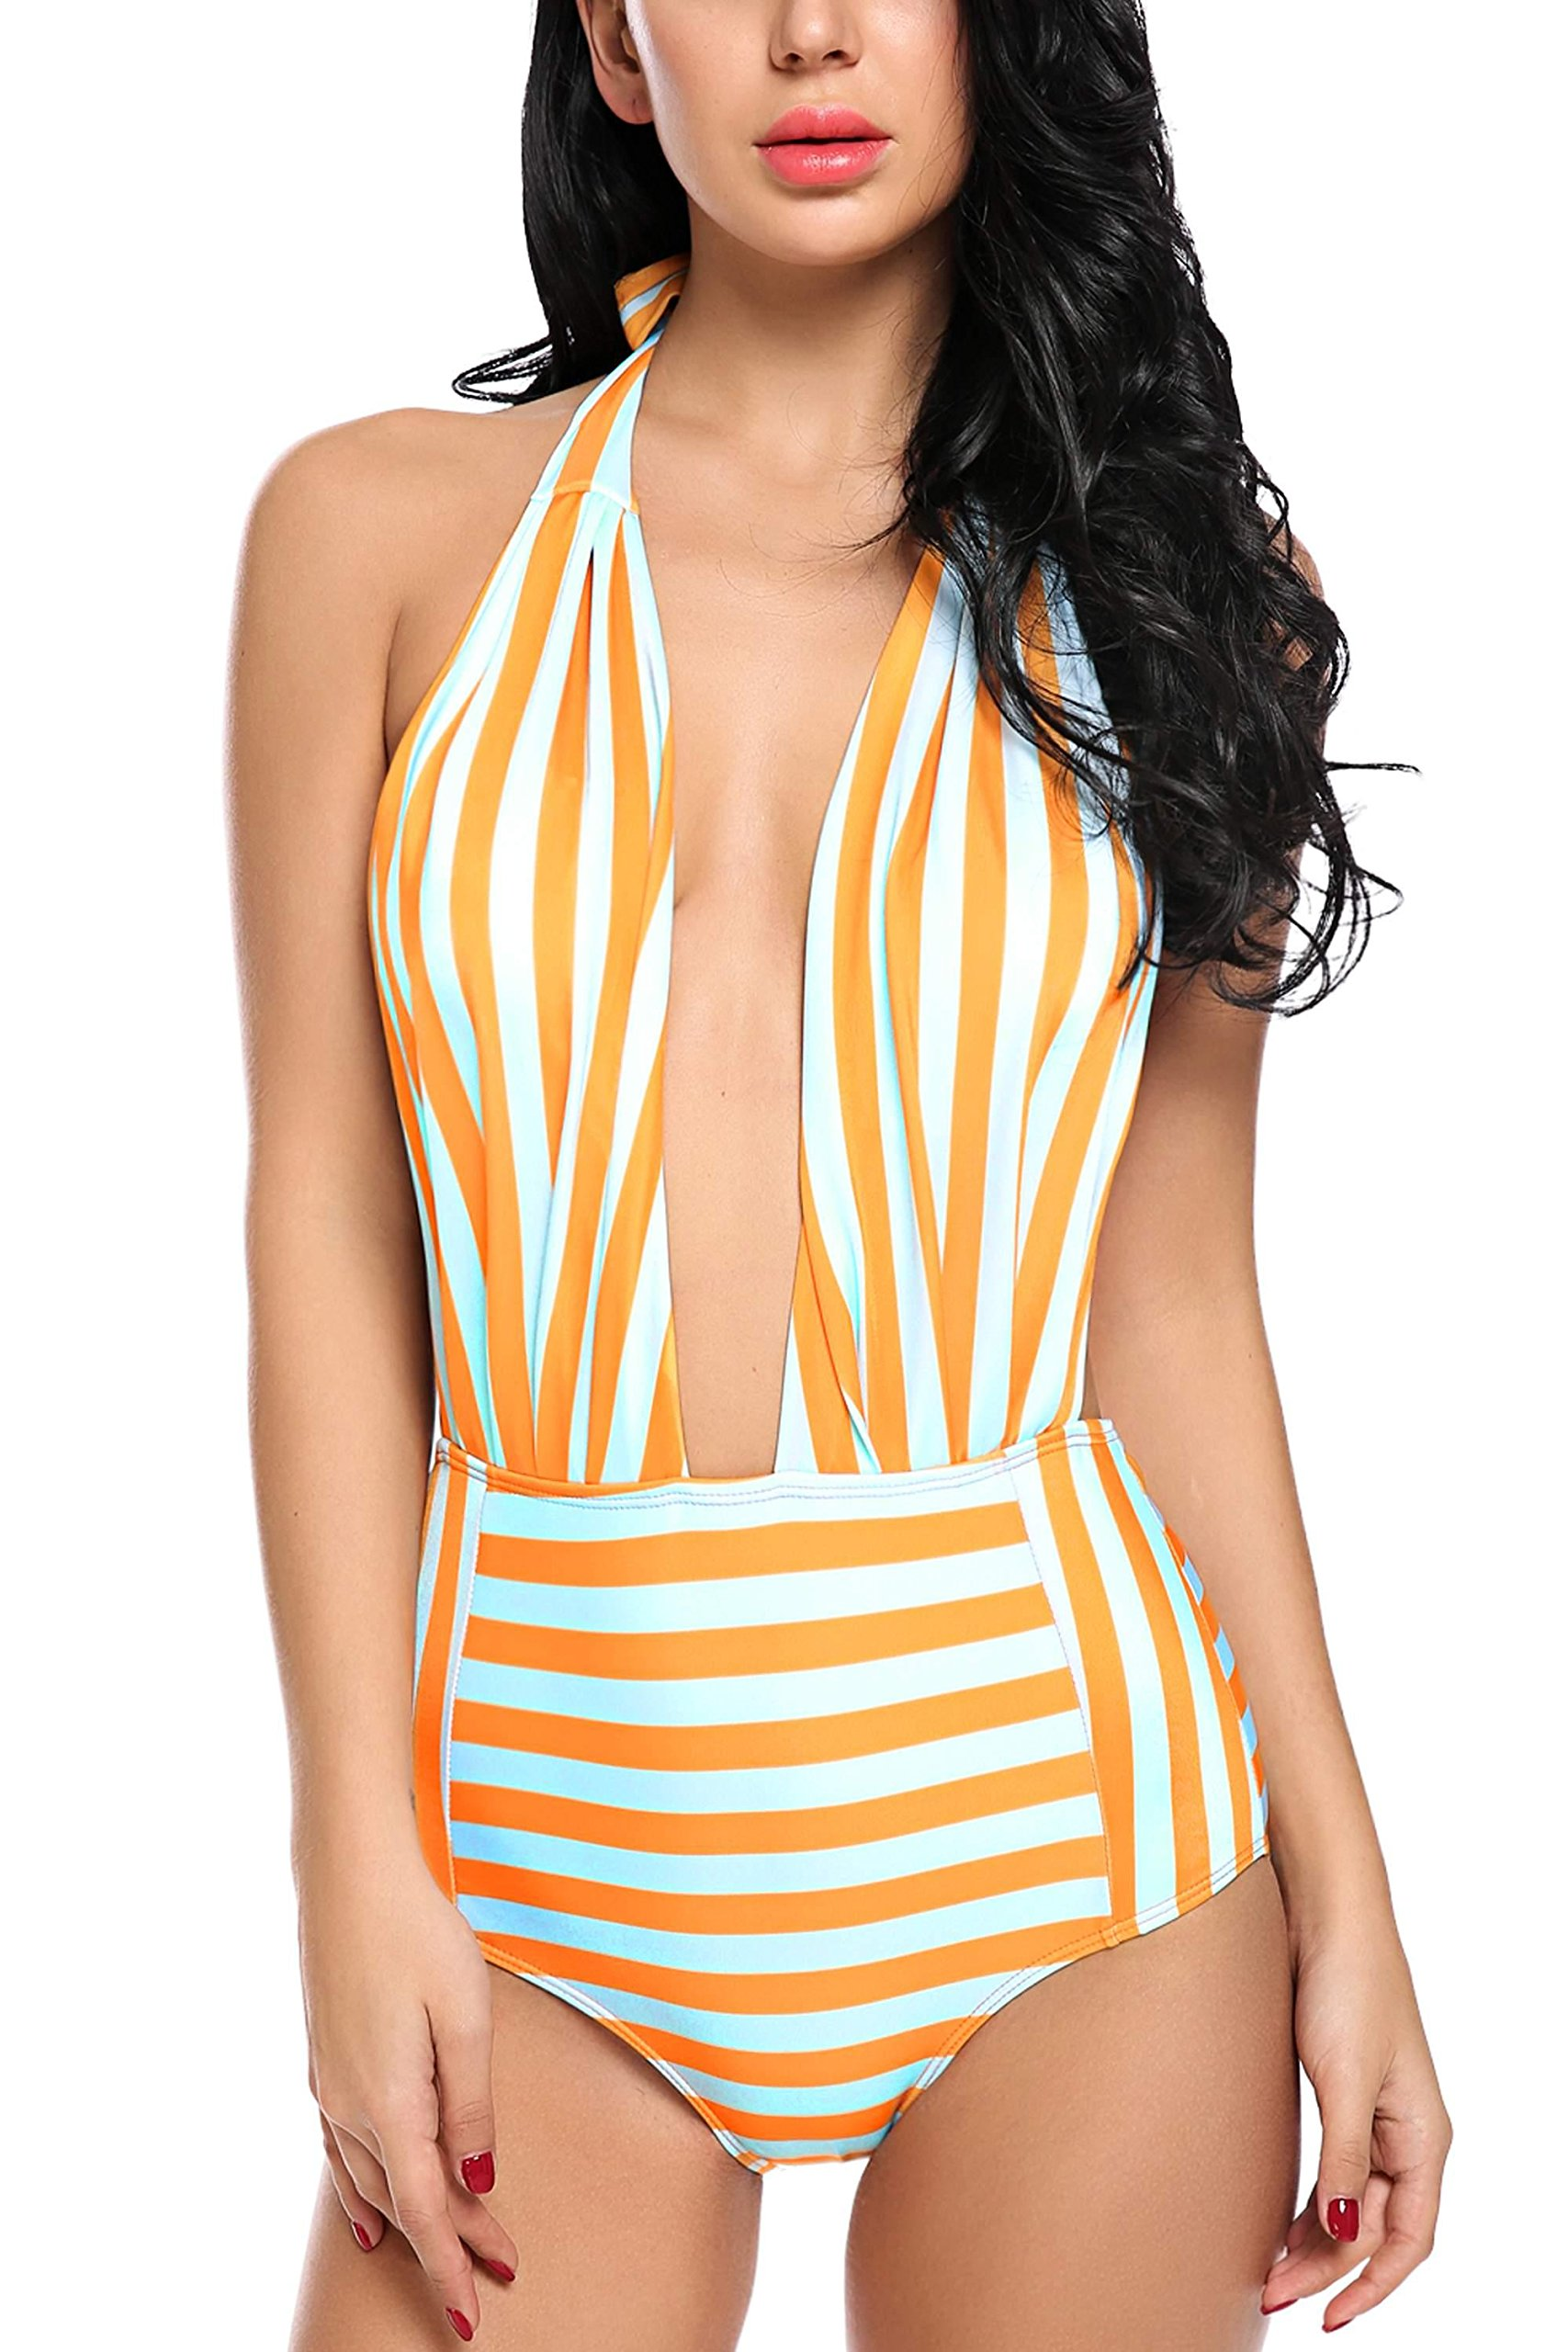 7eacf23190fbb BEAUSOM One and Two Pieces Swimsuit Polka Dot Stripped Bathing Suit for  Women High Waisted Bikini Swimwear Orange